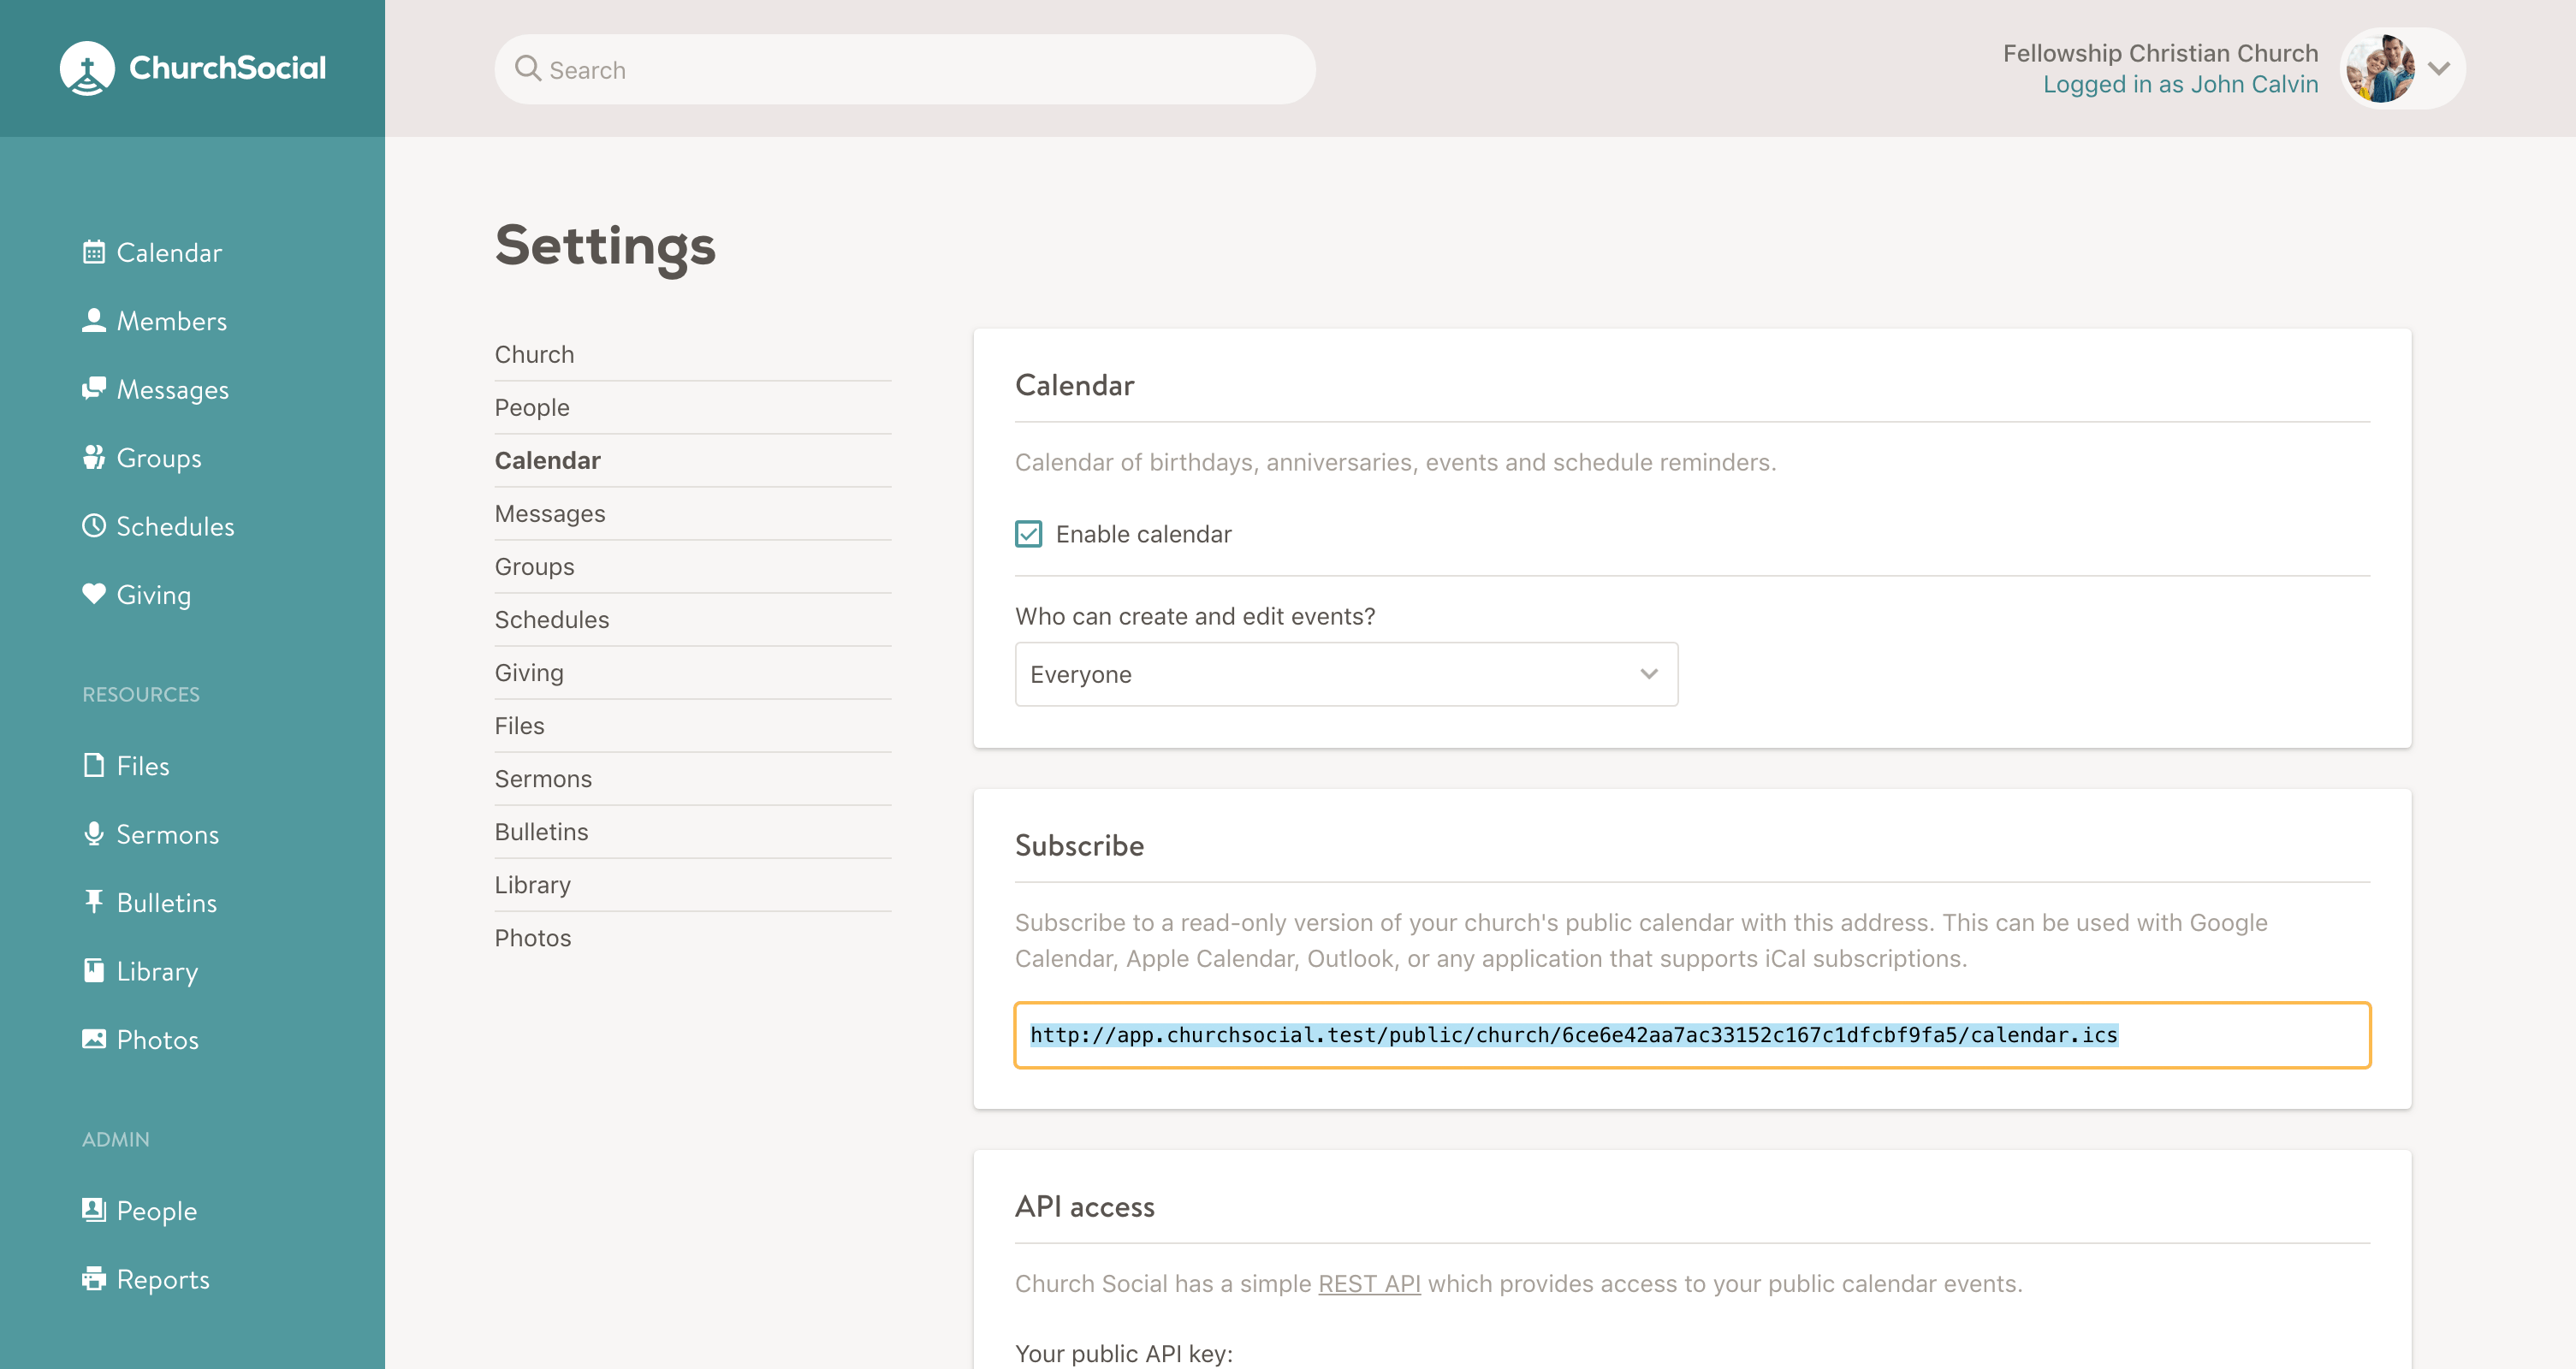 Screenshot of the calendar settings page